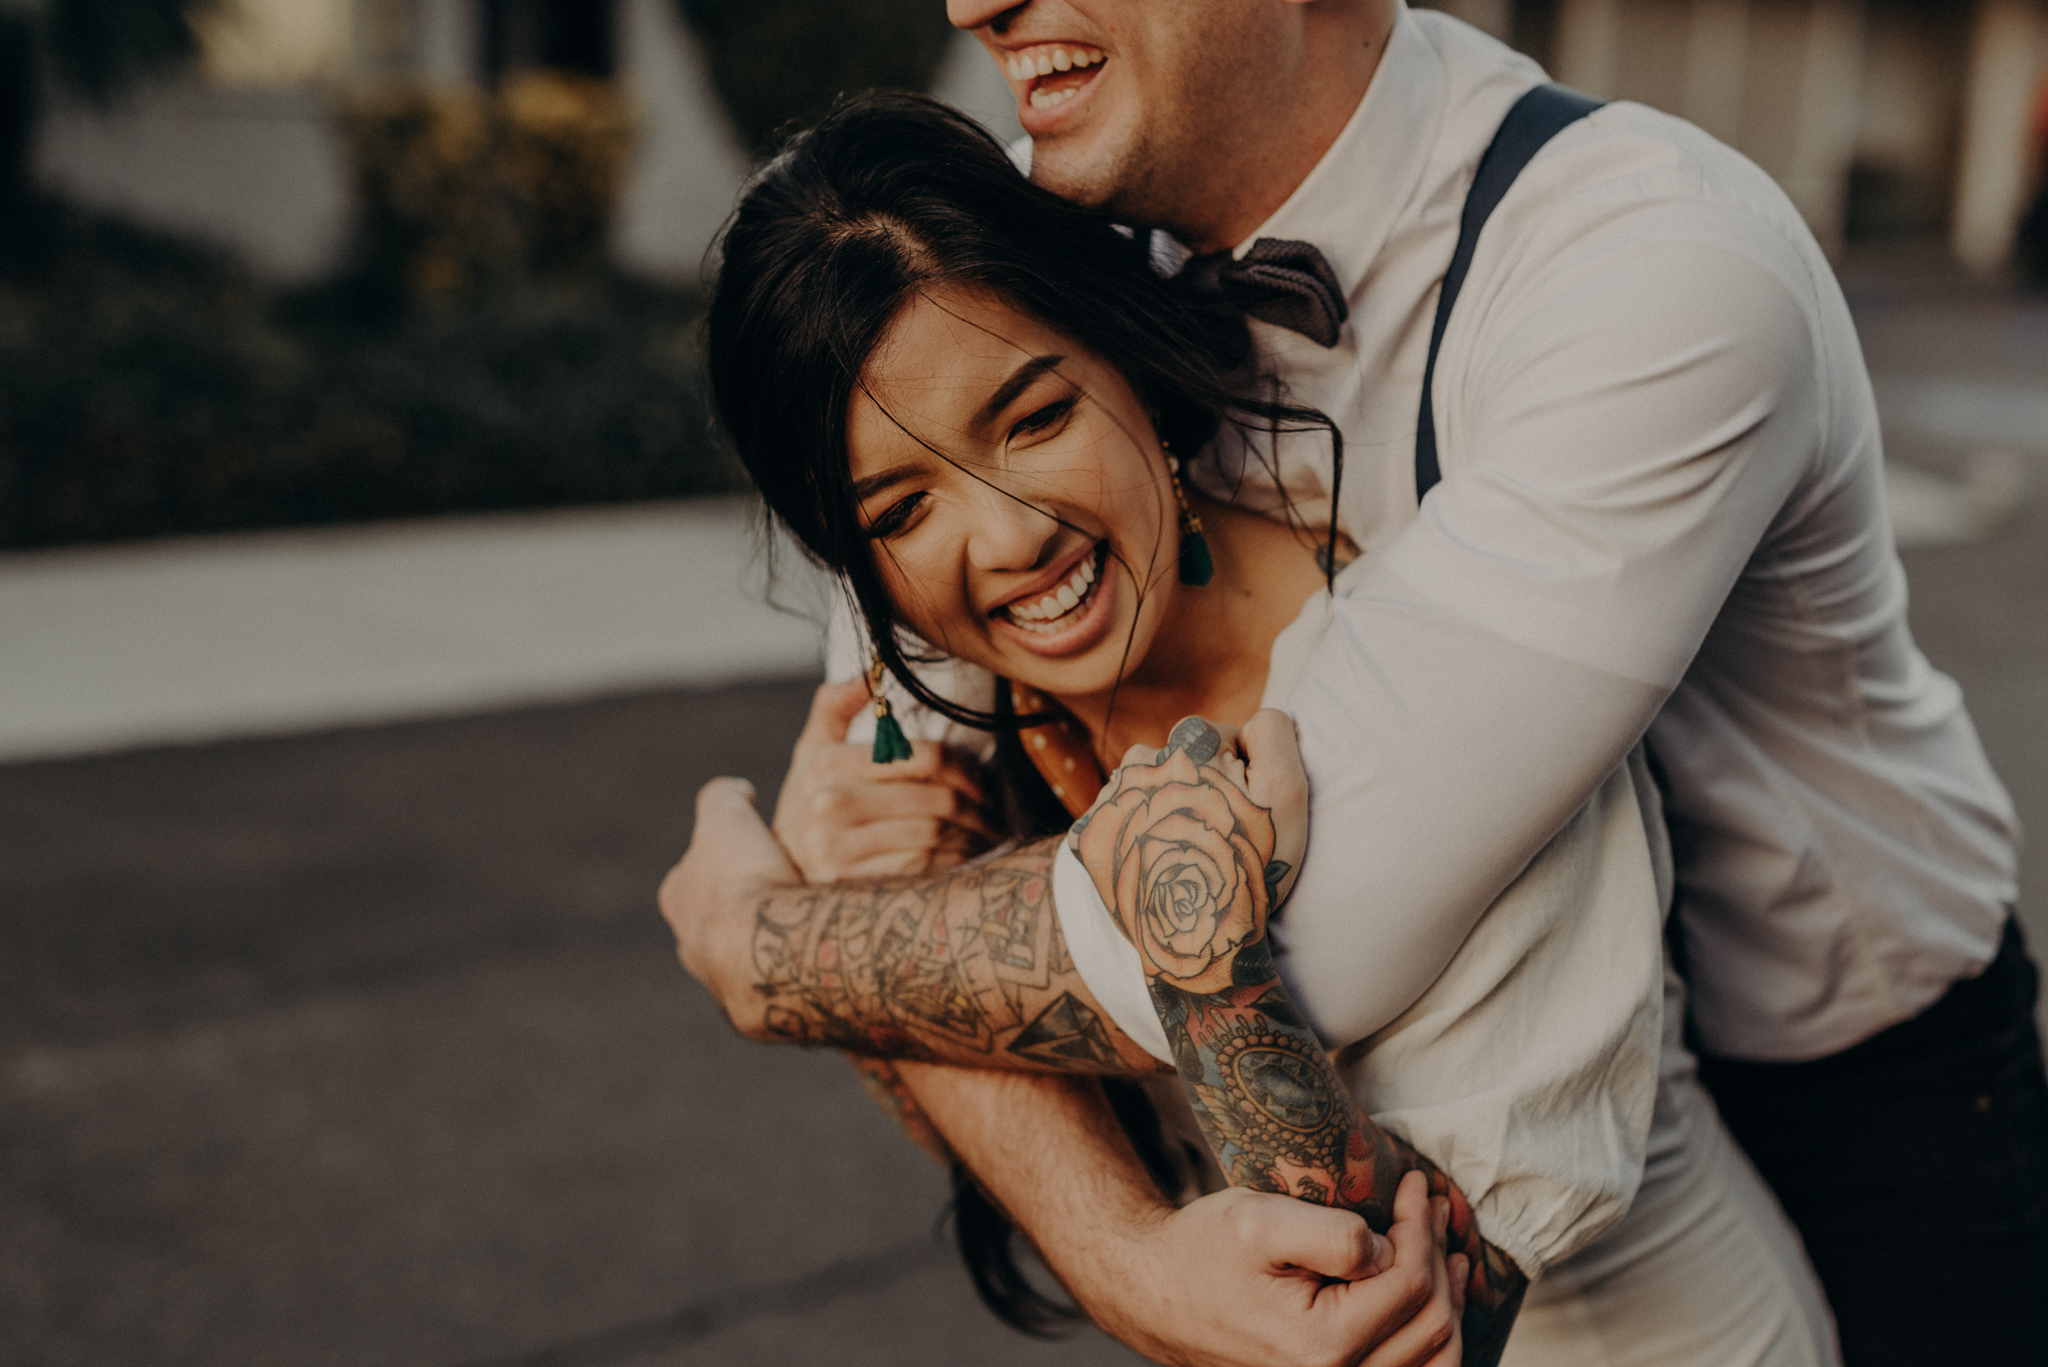 Wedding Photographer in LA - Los Angeles Wedding Photos - Tattoo Shop Engagement Session - IsaiahAndTaylor.com-048.jpg